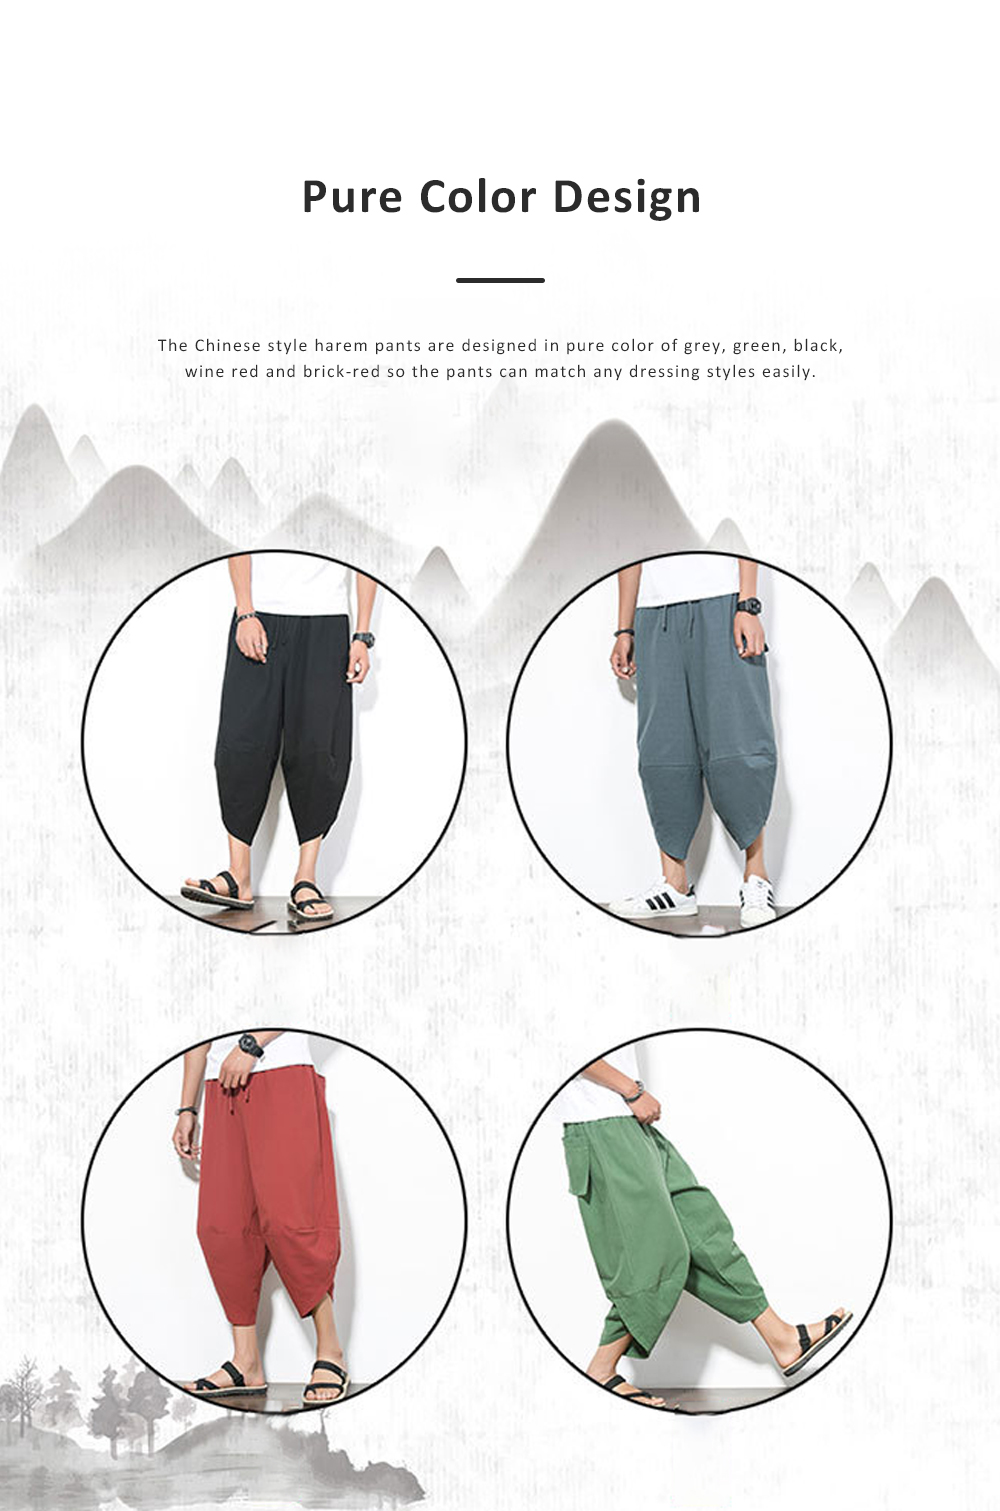 Mid-rise Loose Version Hip Pants Large Size Cropped Trousers for Men Wear Summer Casual Stylish Loose Pants 5